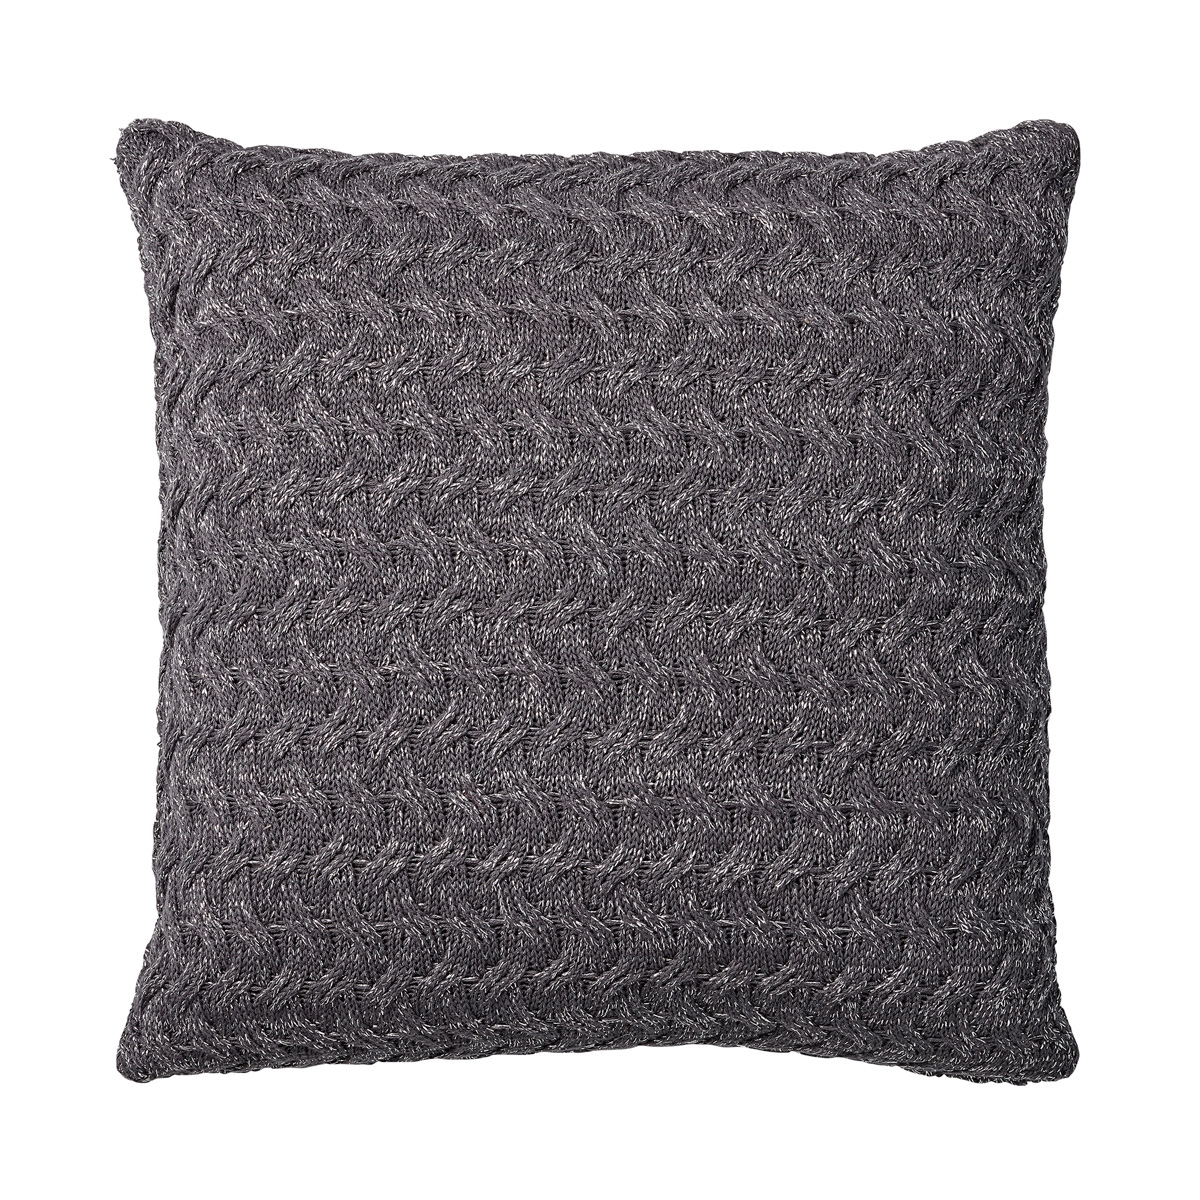 lene bjerre sira-cushion-50x50-cm-a00003026-front